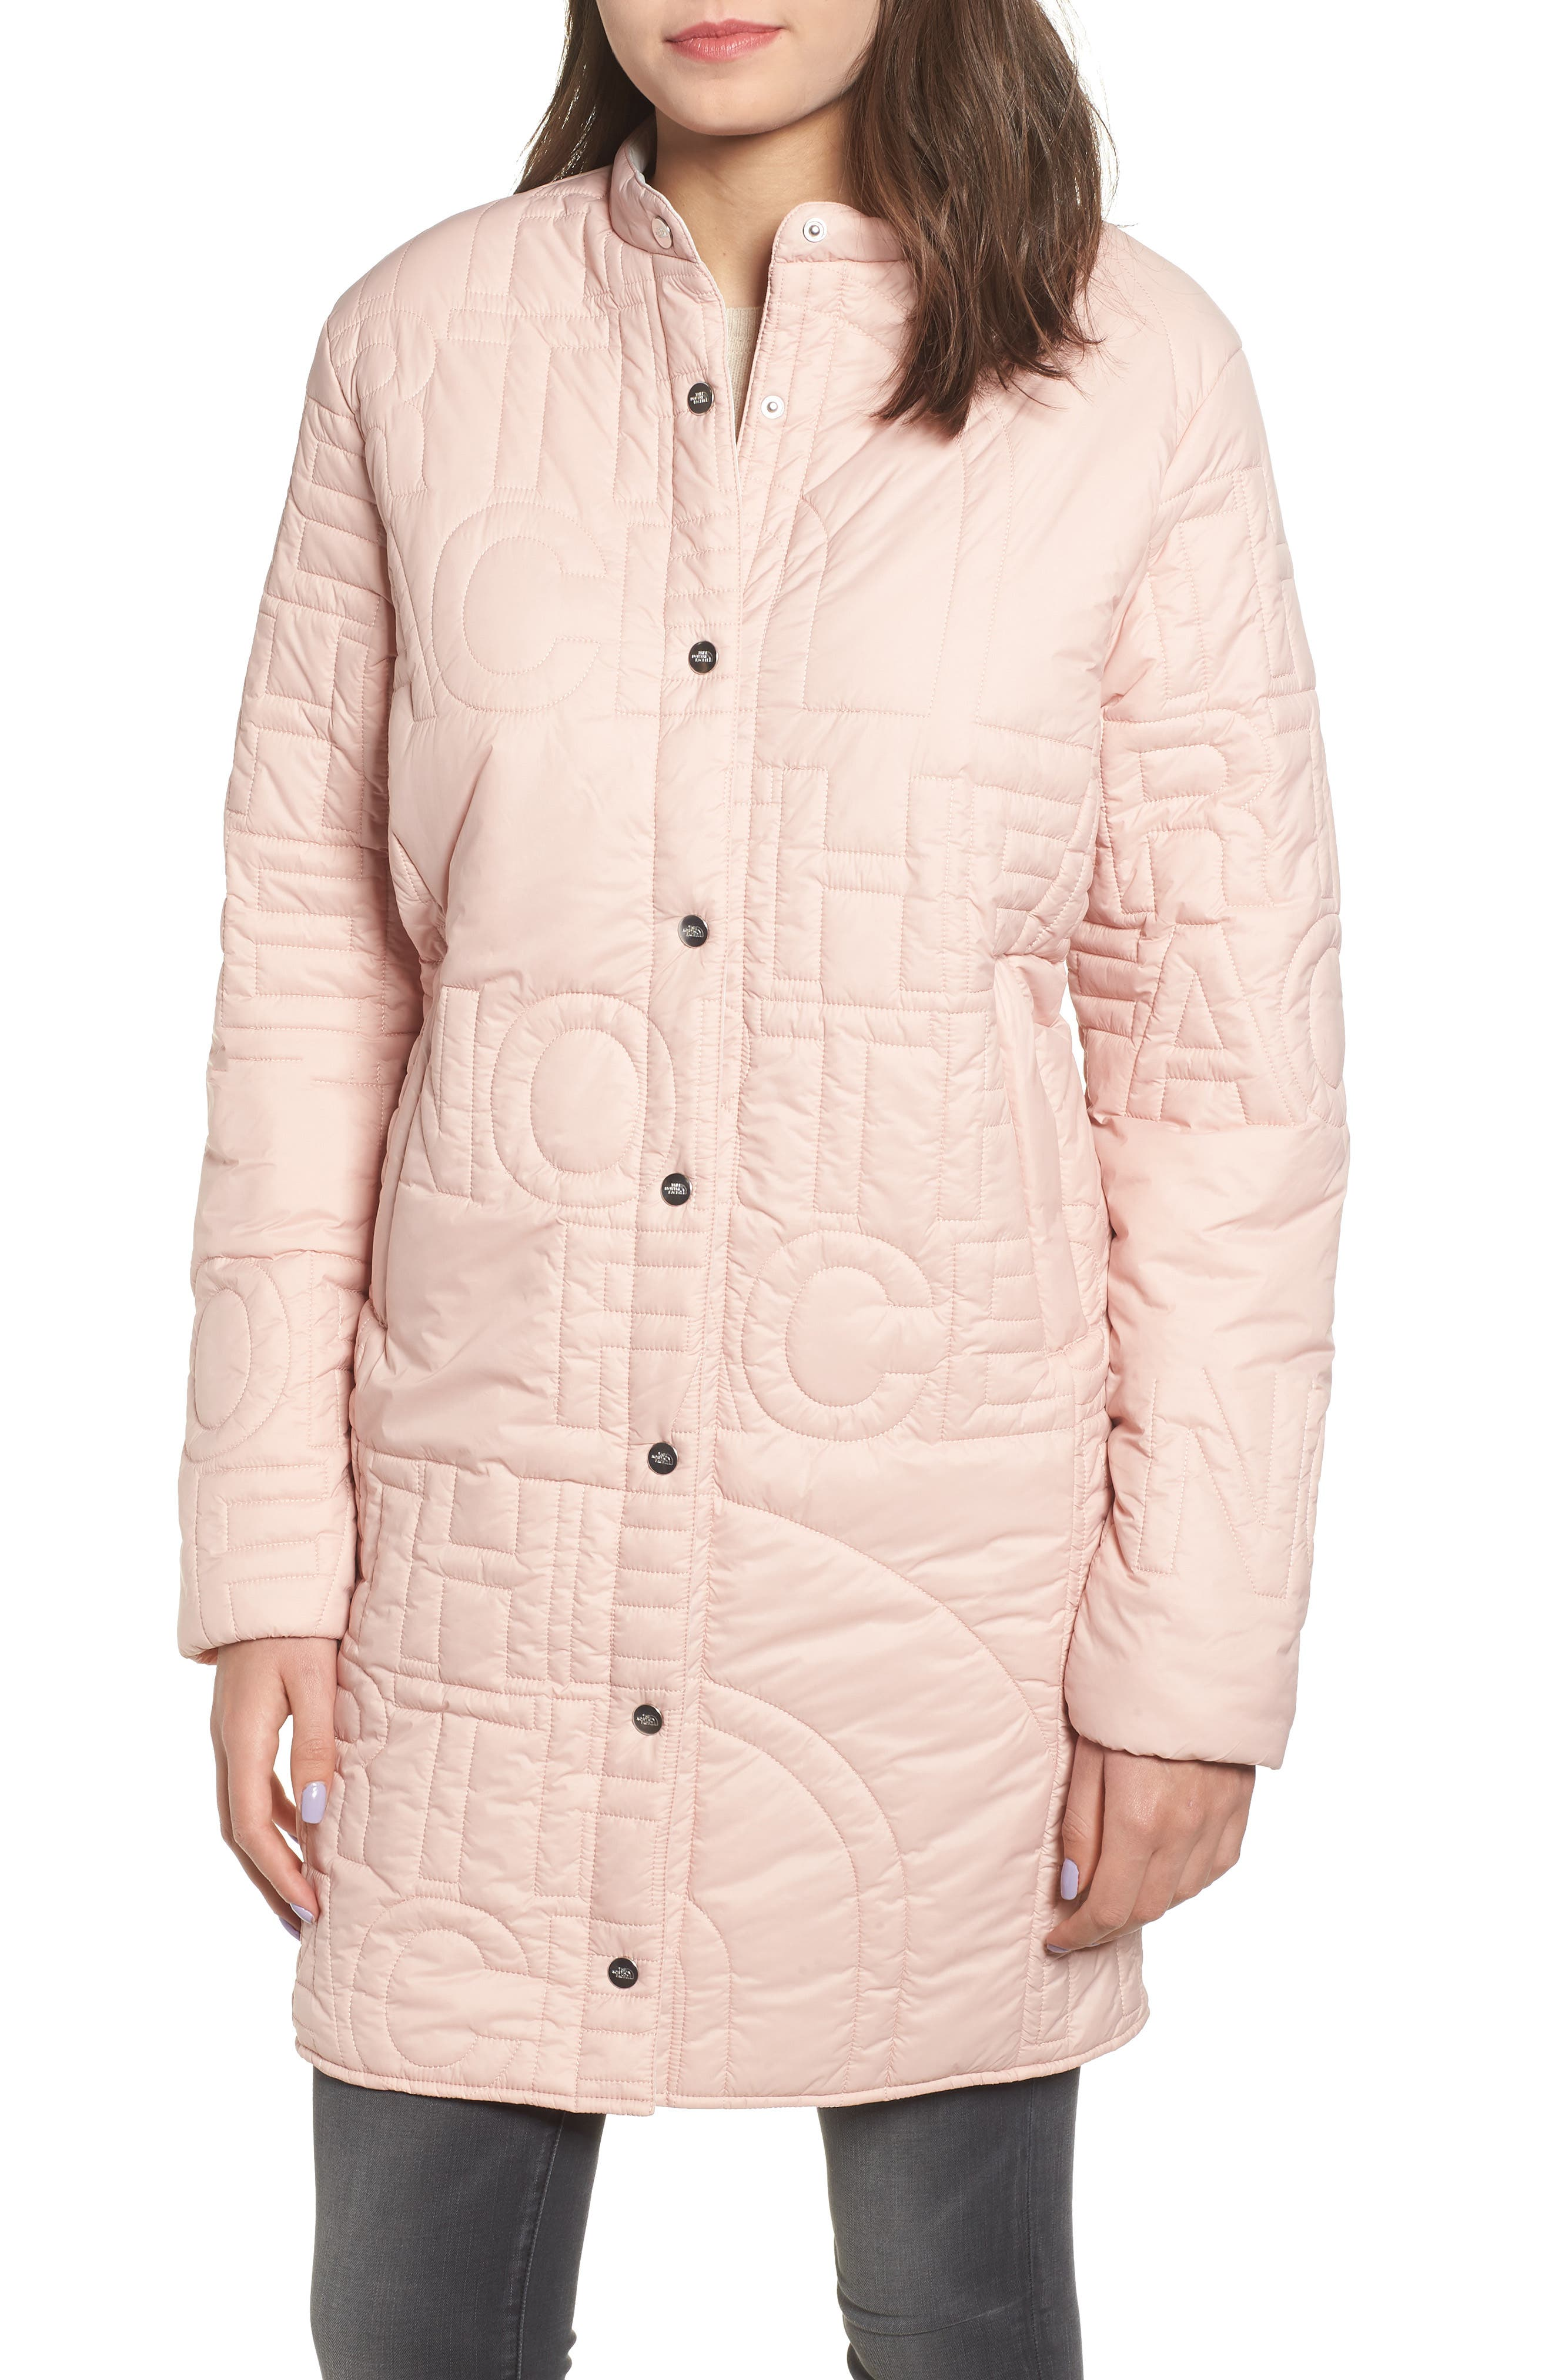 Alphabet City Water Repellent Parka by The North Face